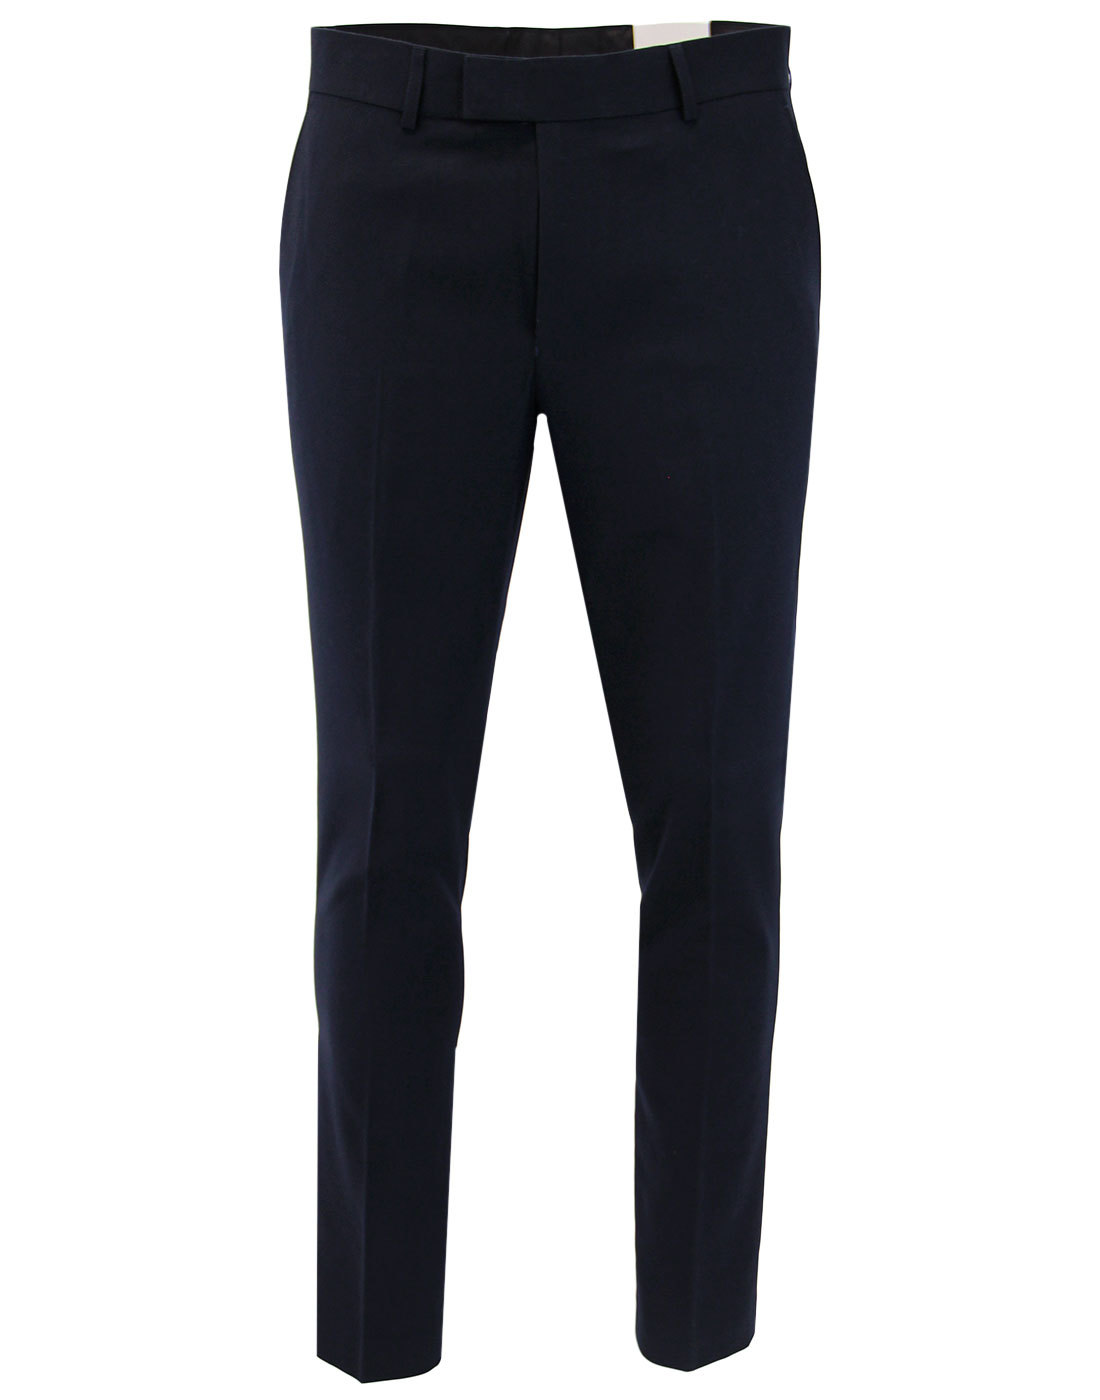 Hampton FARAH 1960s Mod Slim Hopsack Suit Trousers